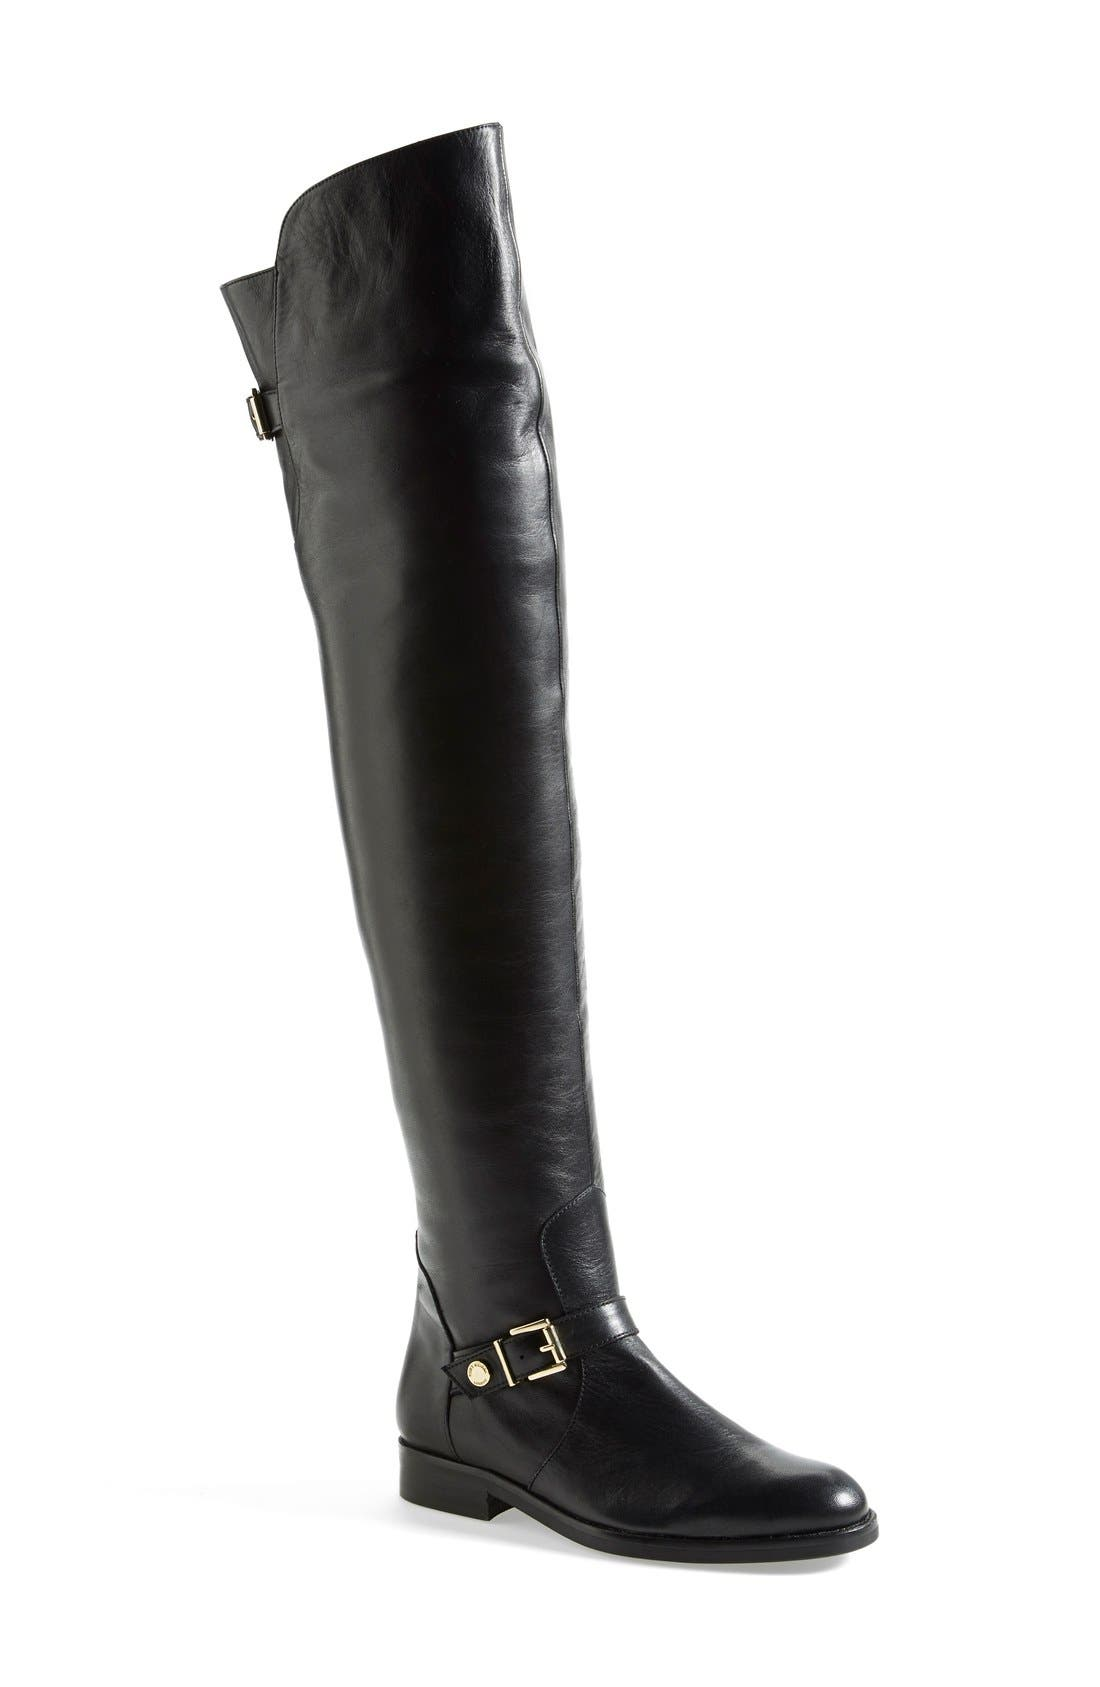 Alternate Image 1 Selected - Kurt Geiger London 'Rowland' Over the Knee Boot (Women)